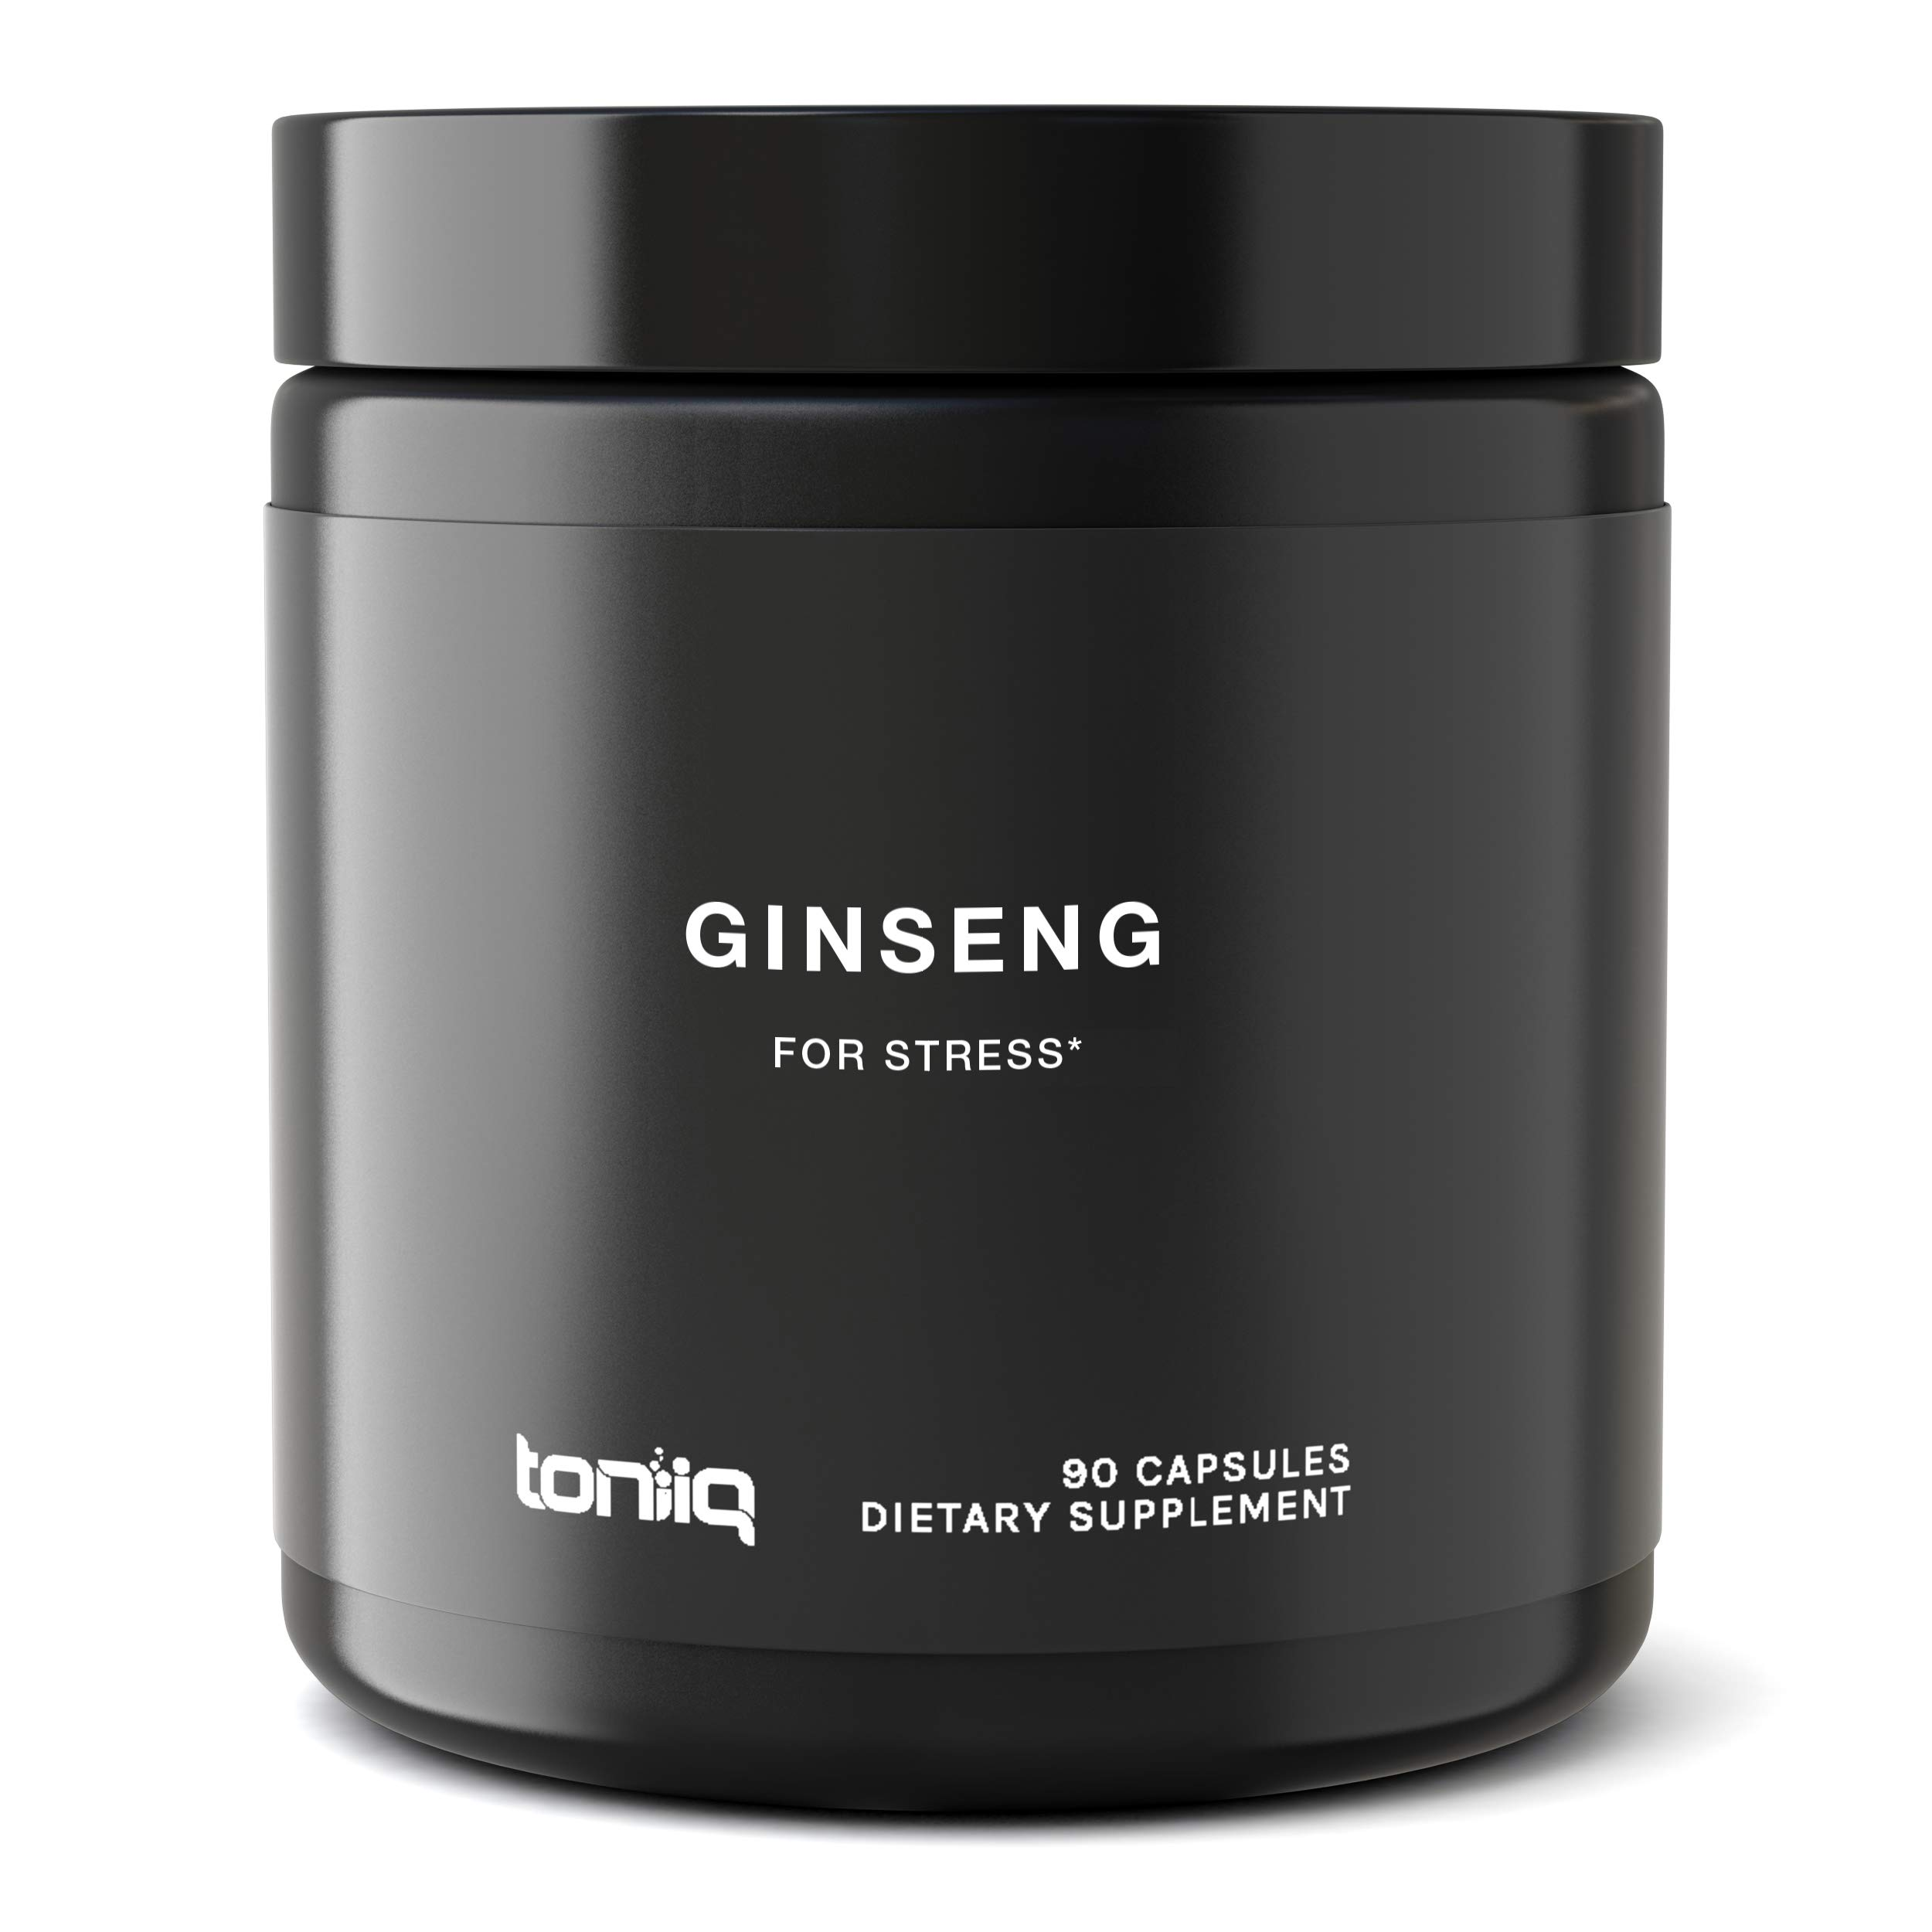 Ultra High Strength Panax Ginseng Capsules - 80% Ginsenosides - The Strongest Red Korean Ginseng Pills Available - 750 mg - Optimal Support for Enhanced Energy and Performance - 90 Veggie Caps by Toniiq (Image #1)